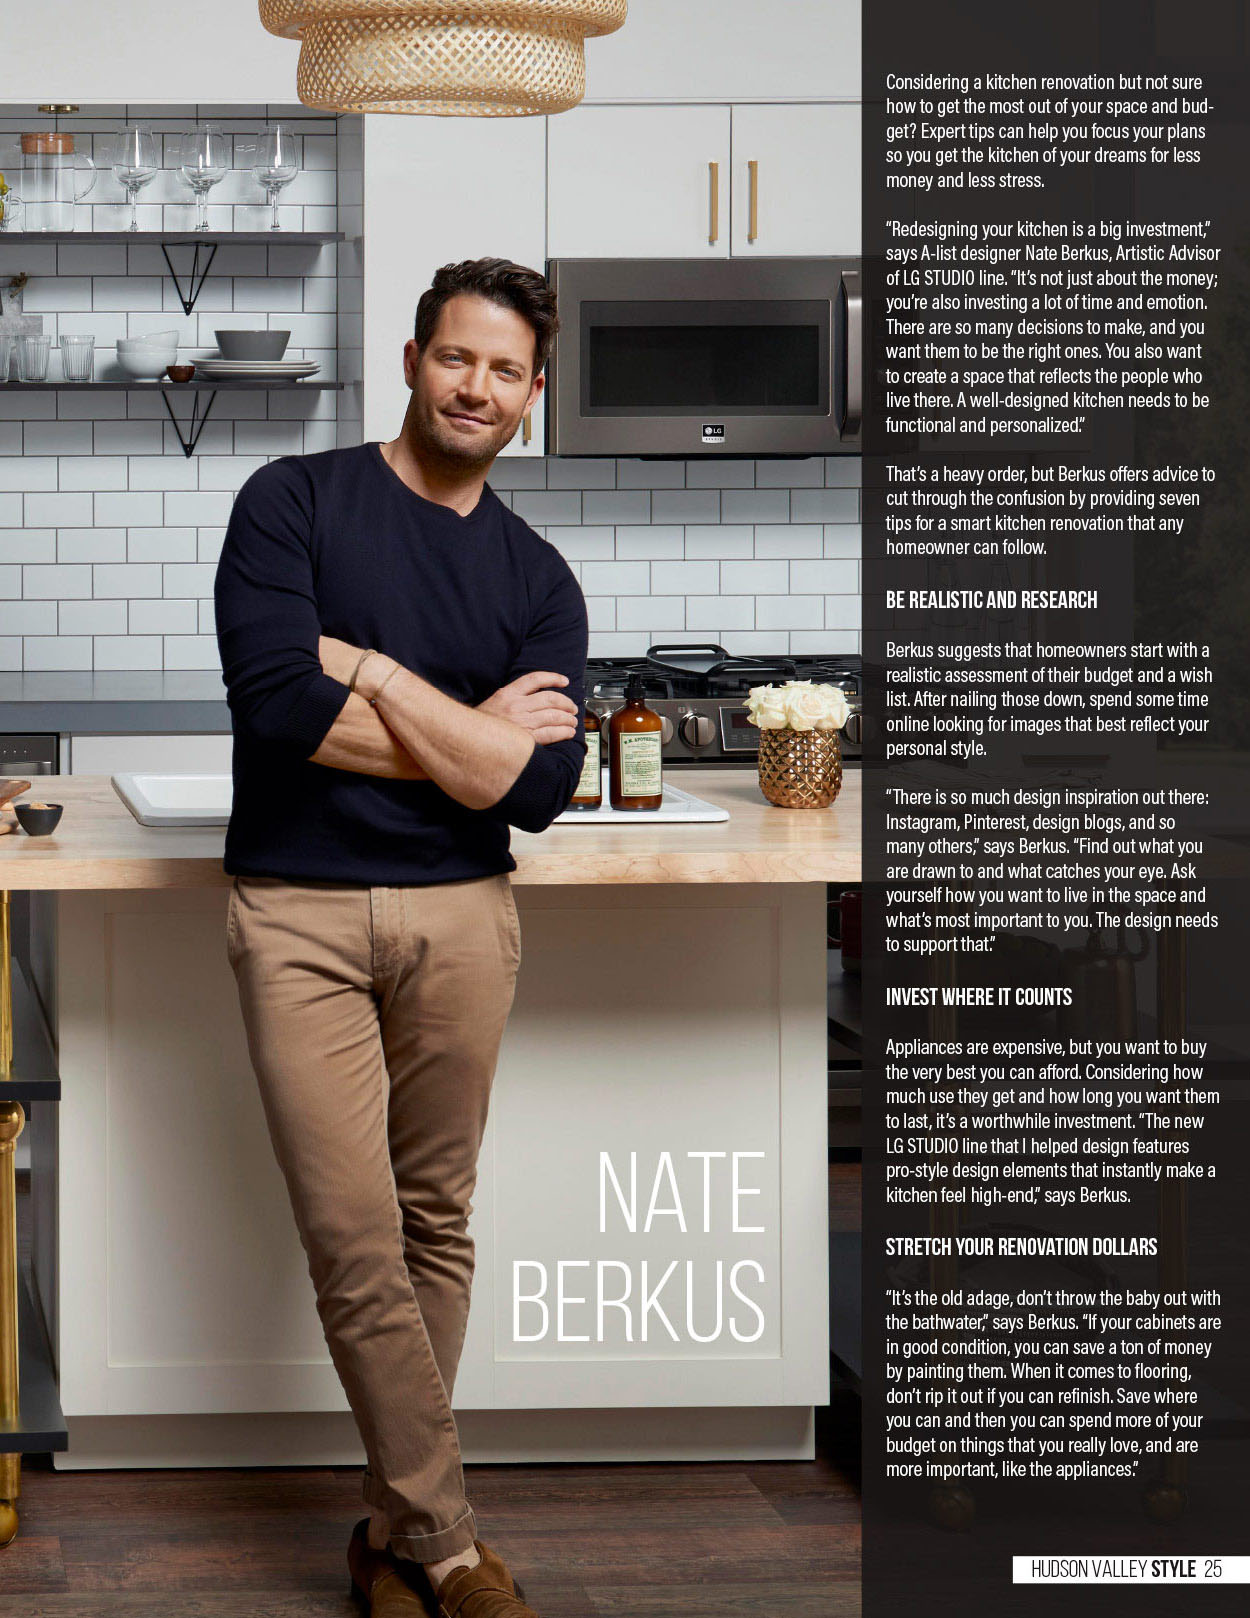 The Golden Rules of Renovation - Nate Berkus - Hudson Valley Style Magazine